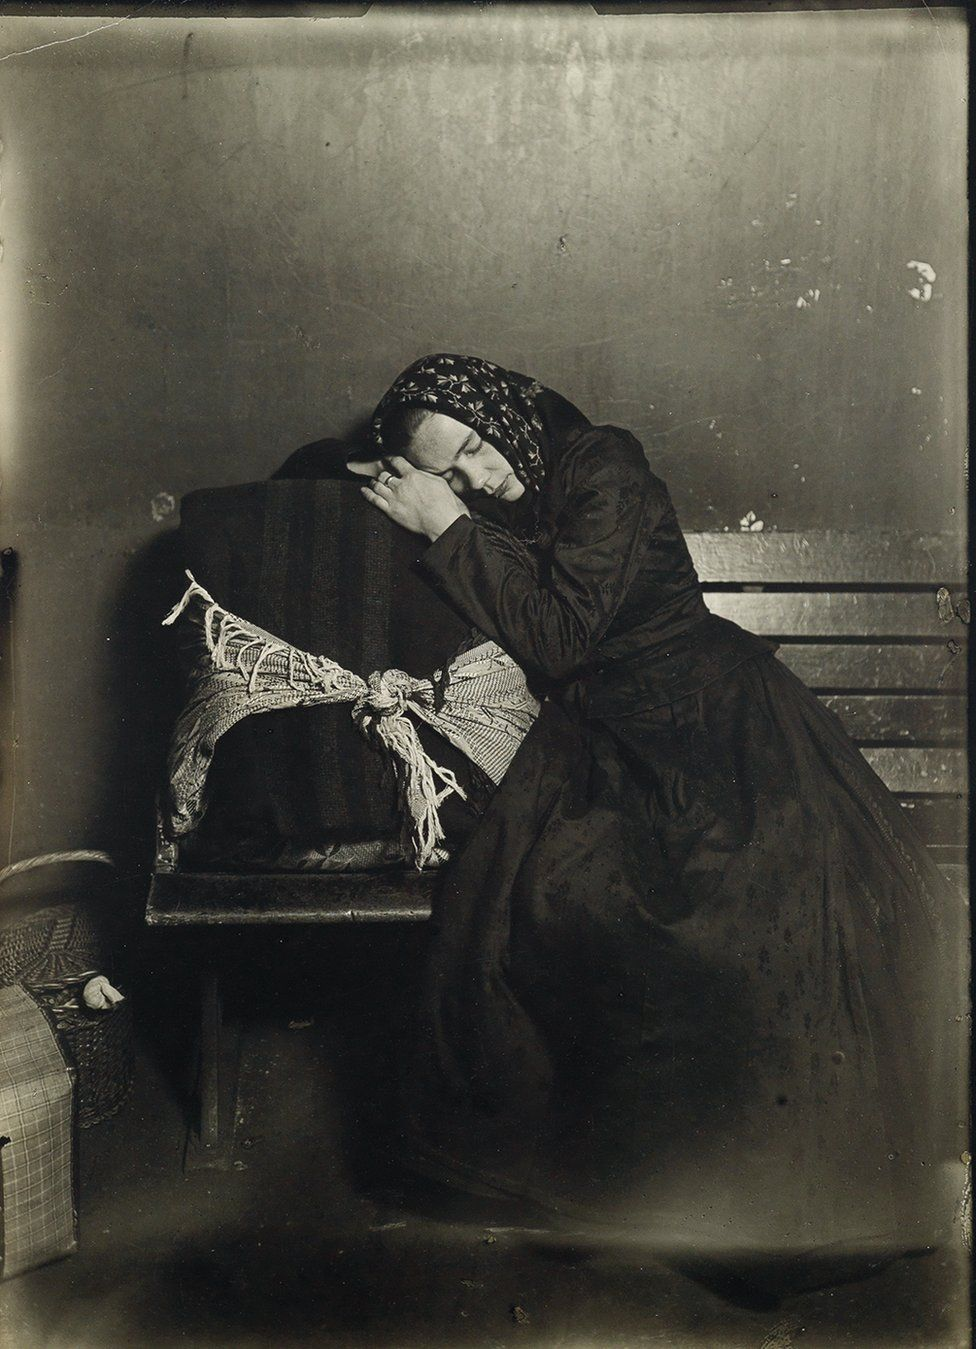 An immigrant sleeps on her case.